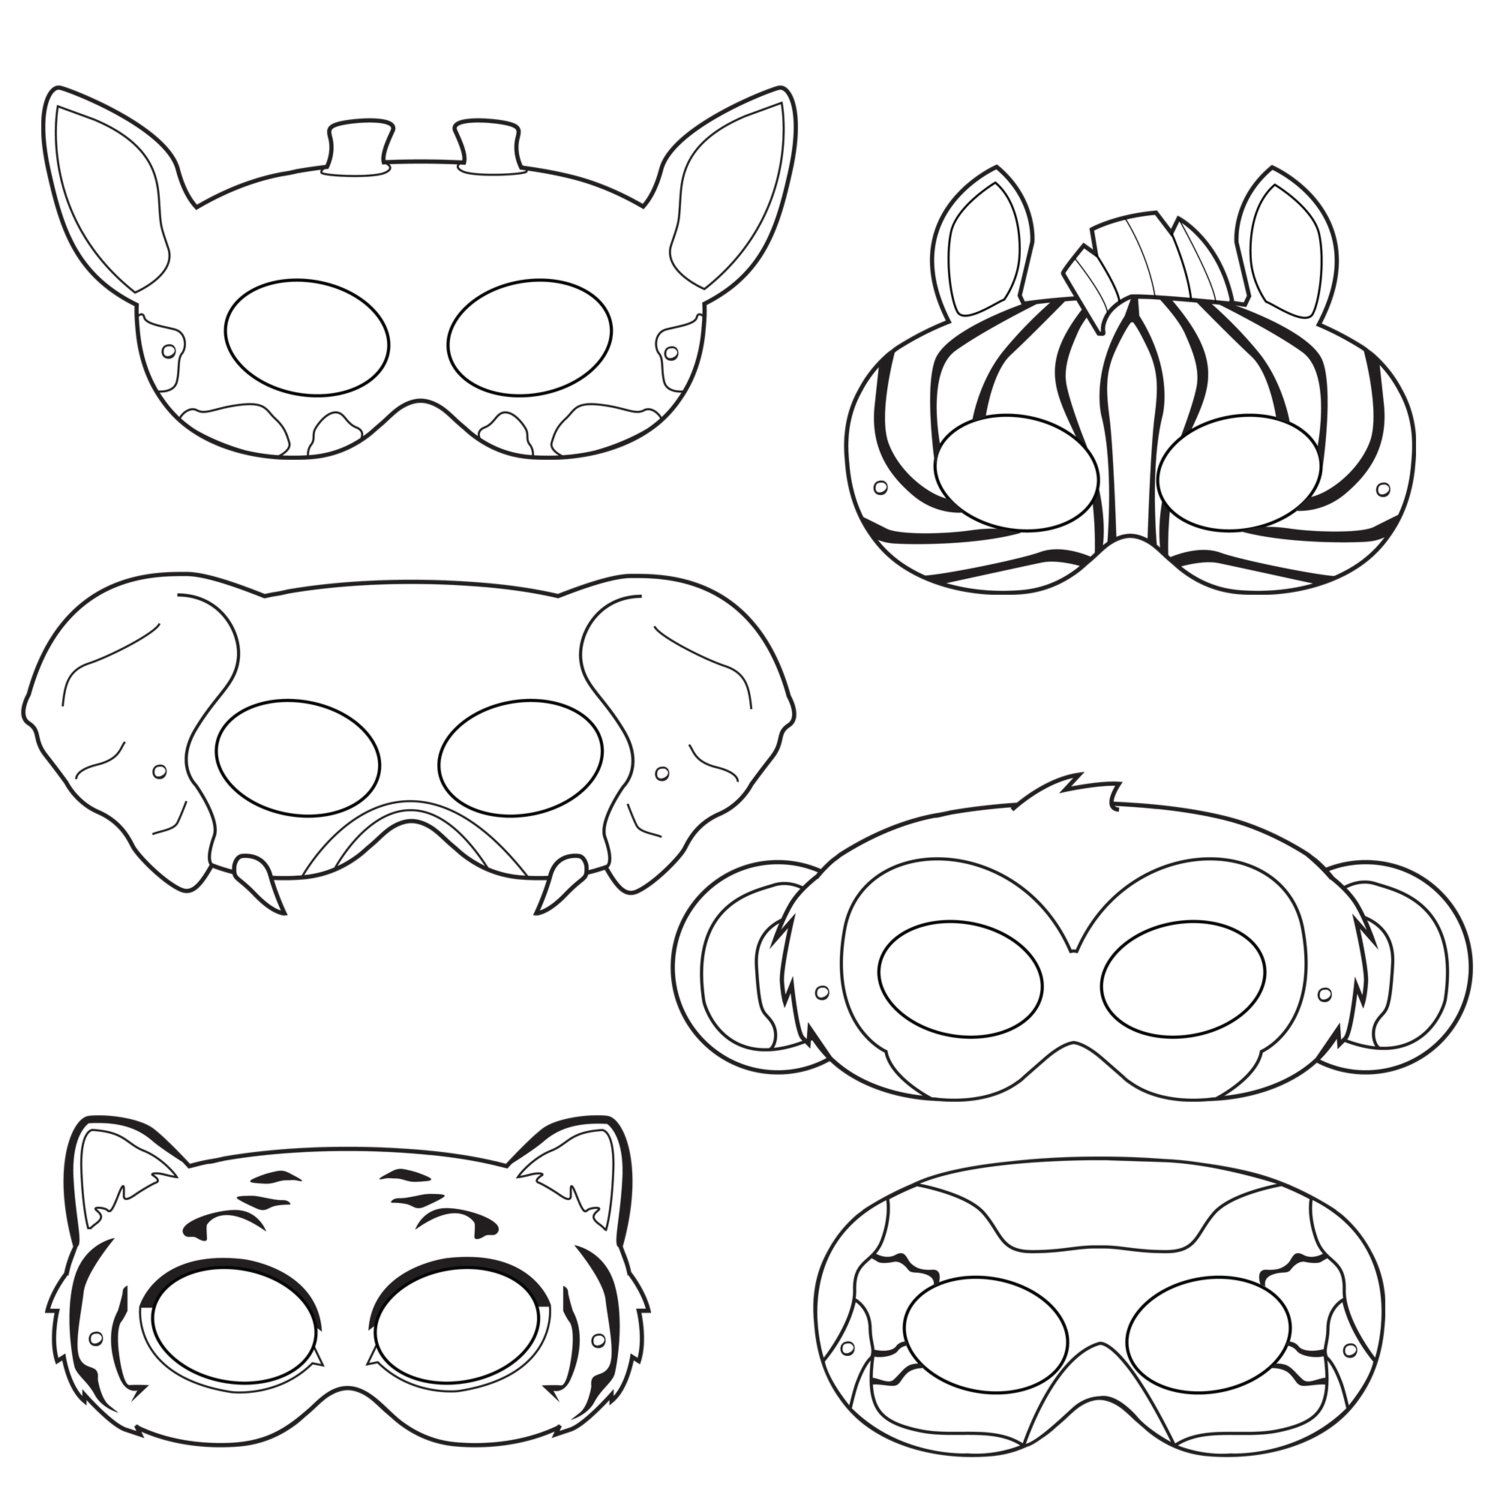 Jungle animals coloring masks monkey mask elephant mask for Sloth mask template